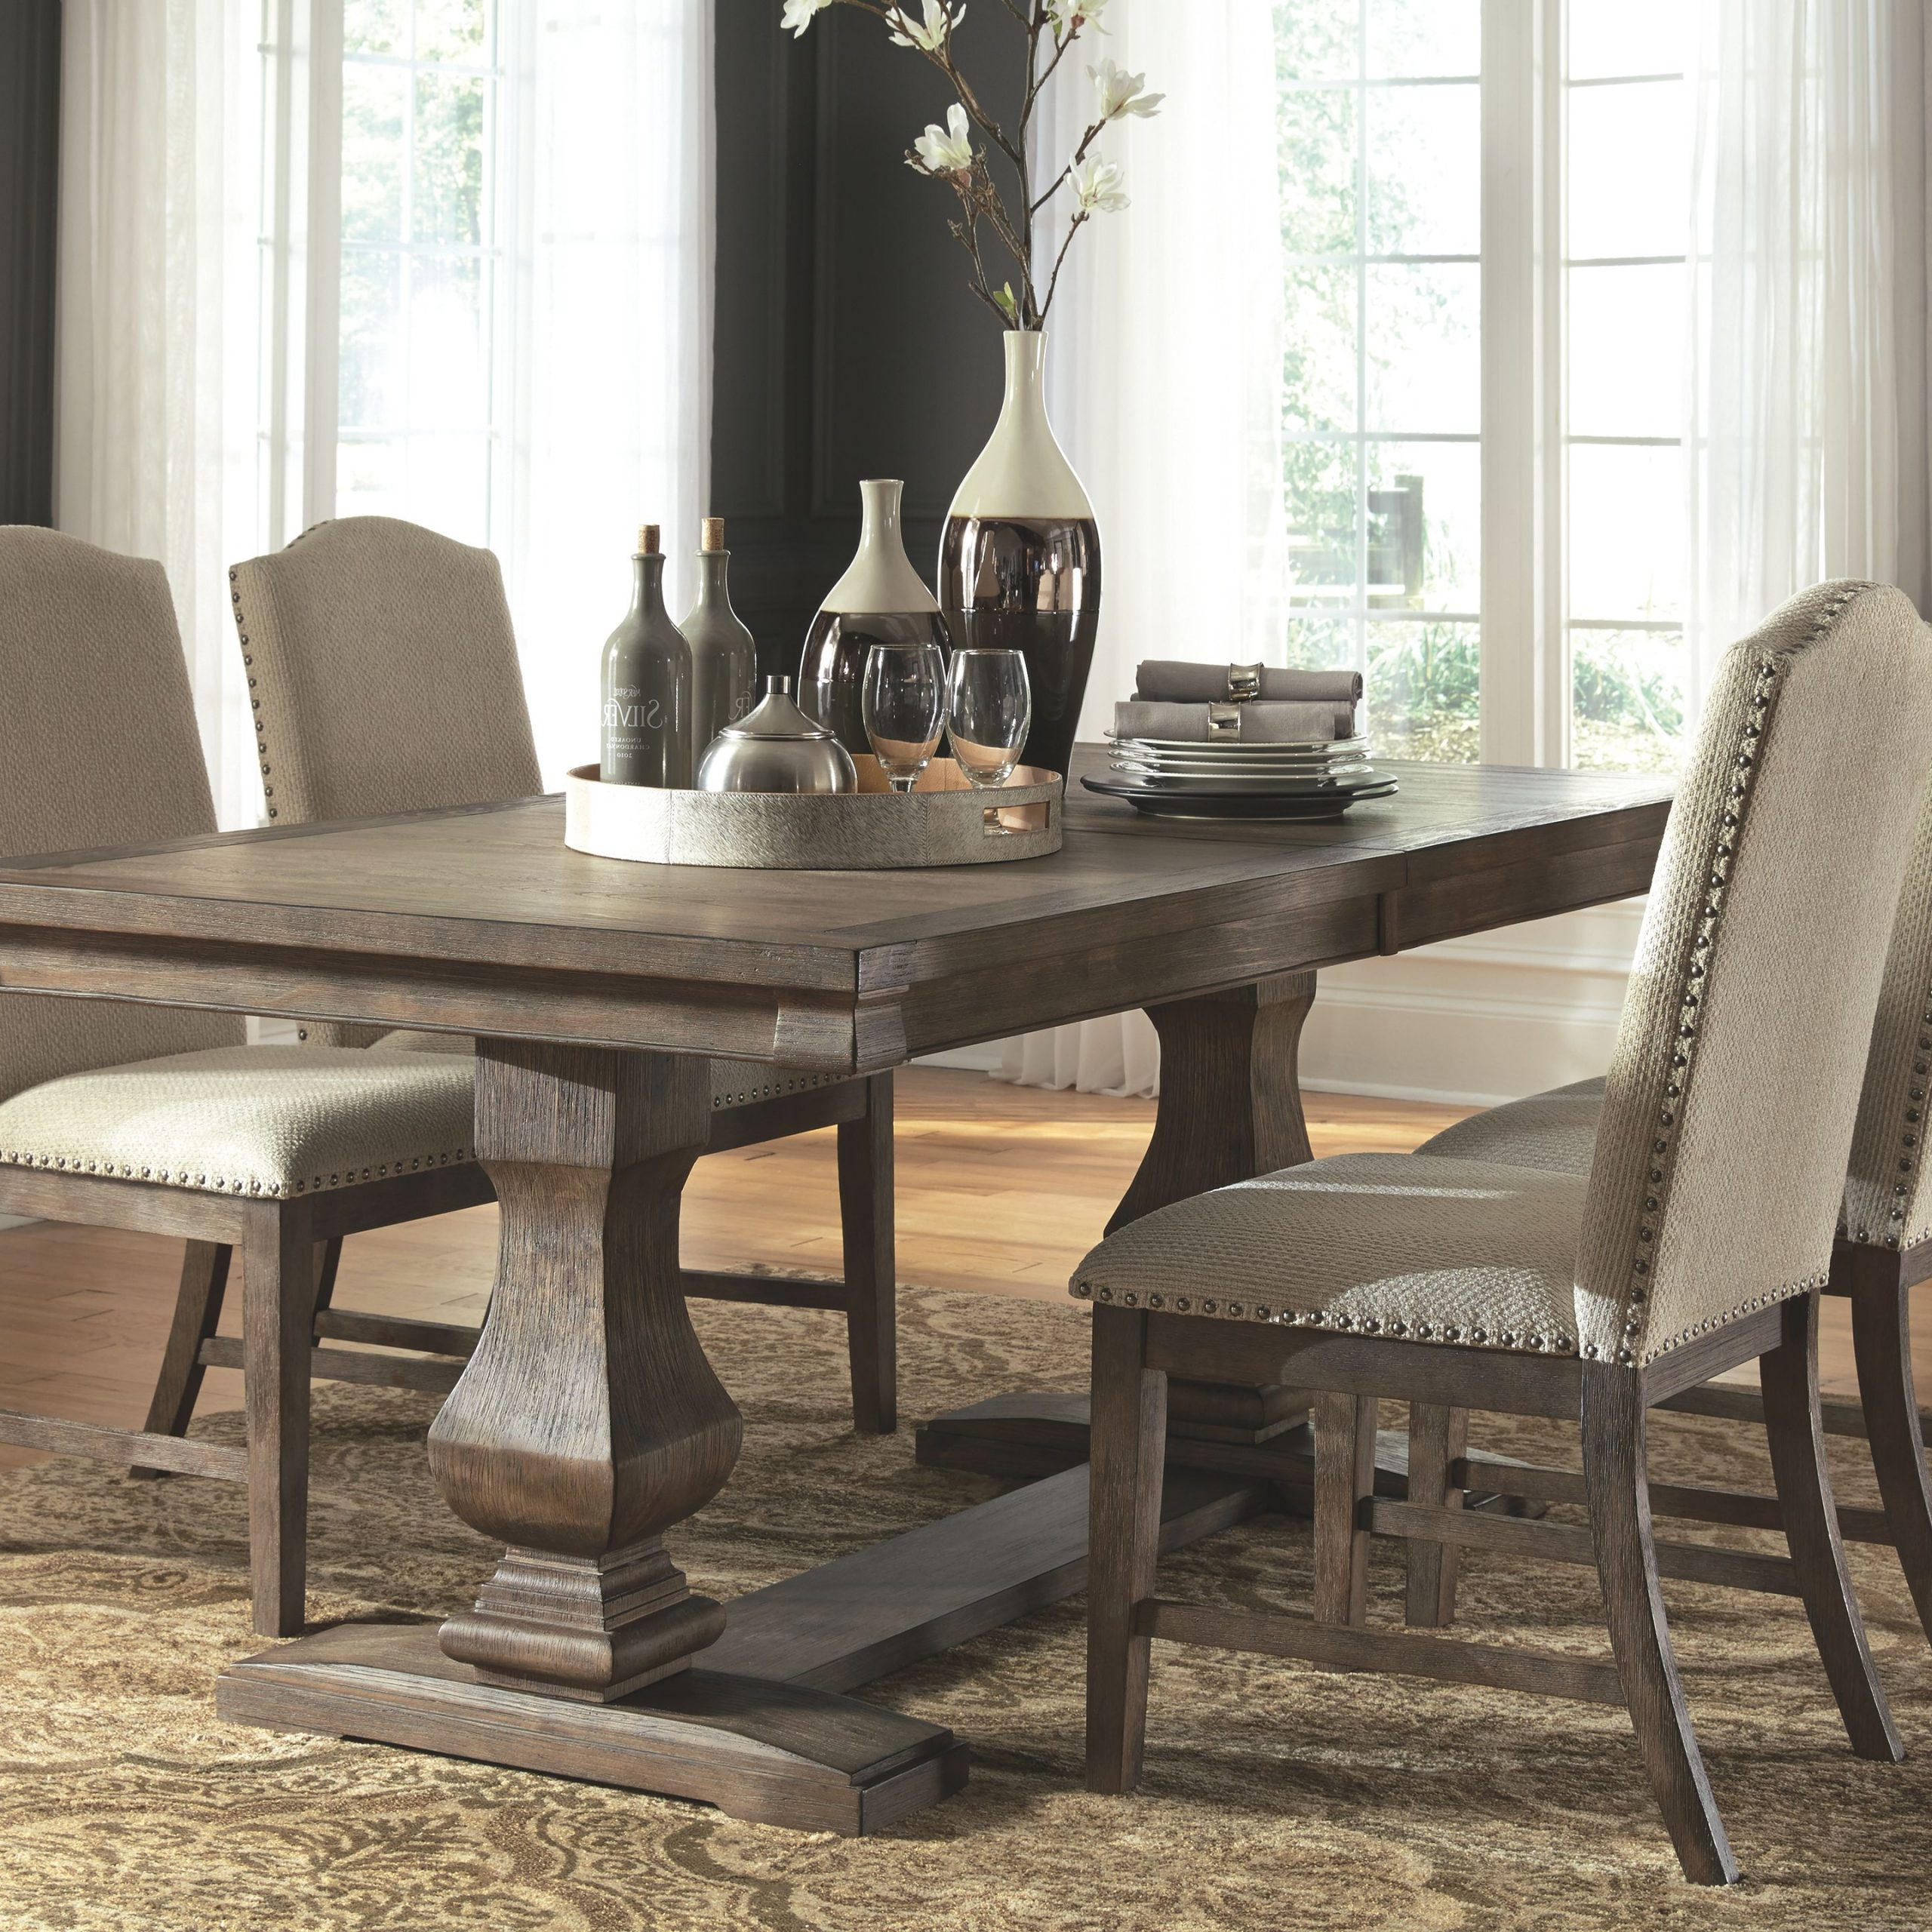 Most Recently Released Aecc Lorraine Extending Dining Table C Hewn Oak C Pottery Intended For Hewn Oak Lorraine Extending Dining Tables (View 6 of 25)